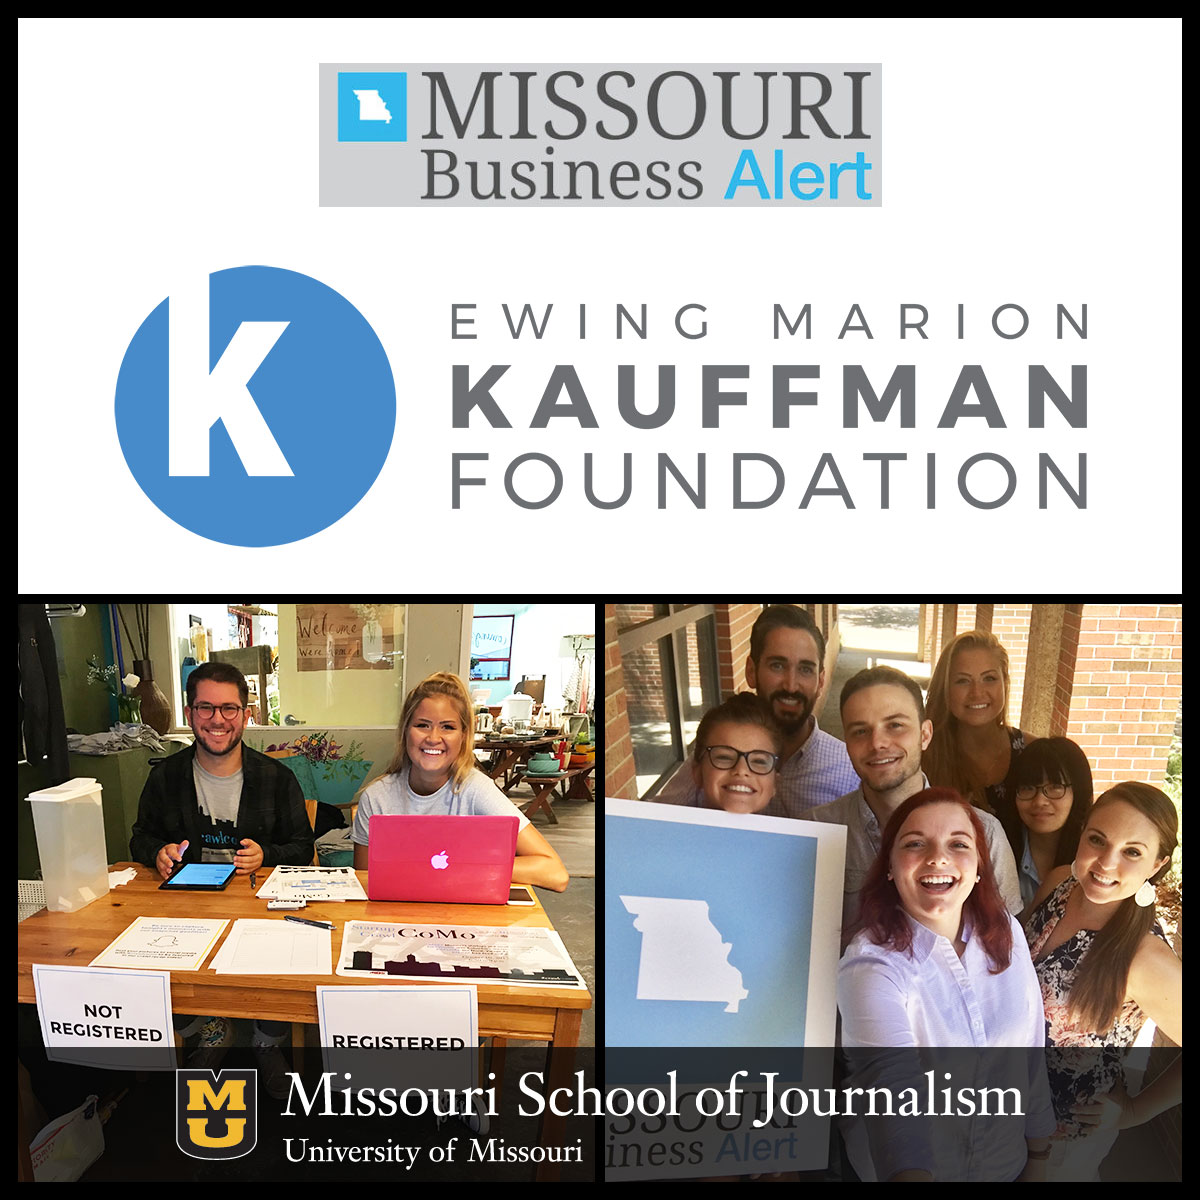 Ewing Marion Kauffman Foundation Awards $2K to Missouri Business Alert